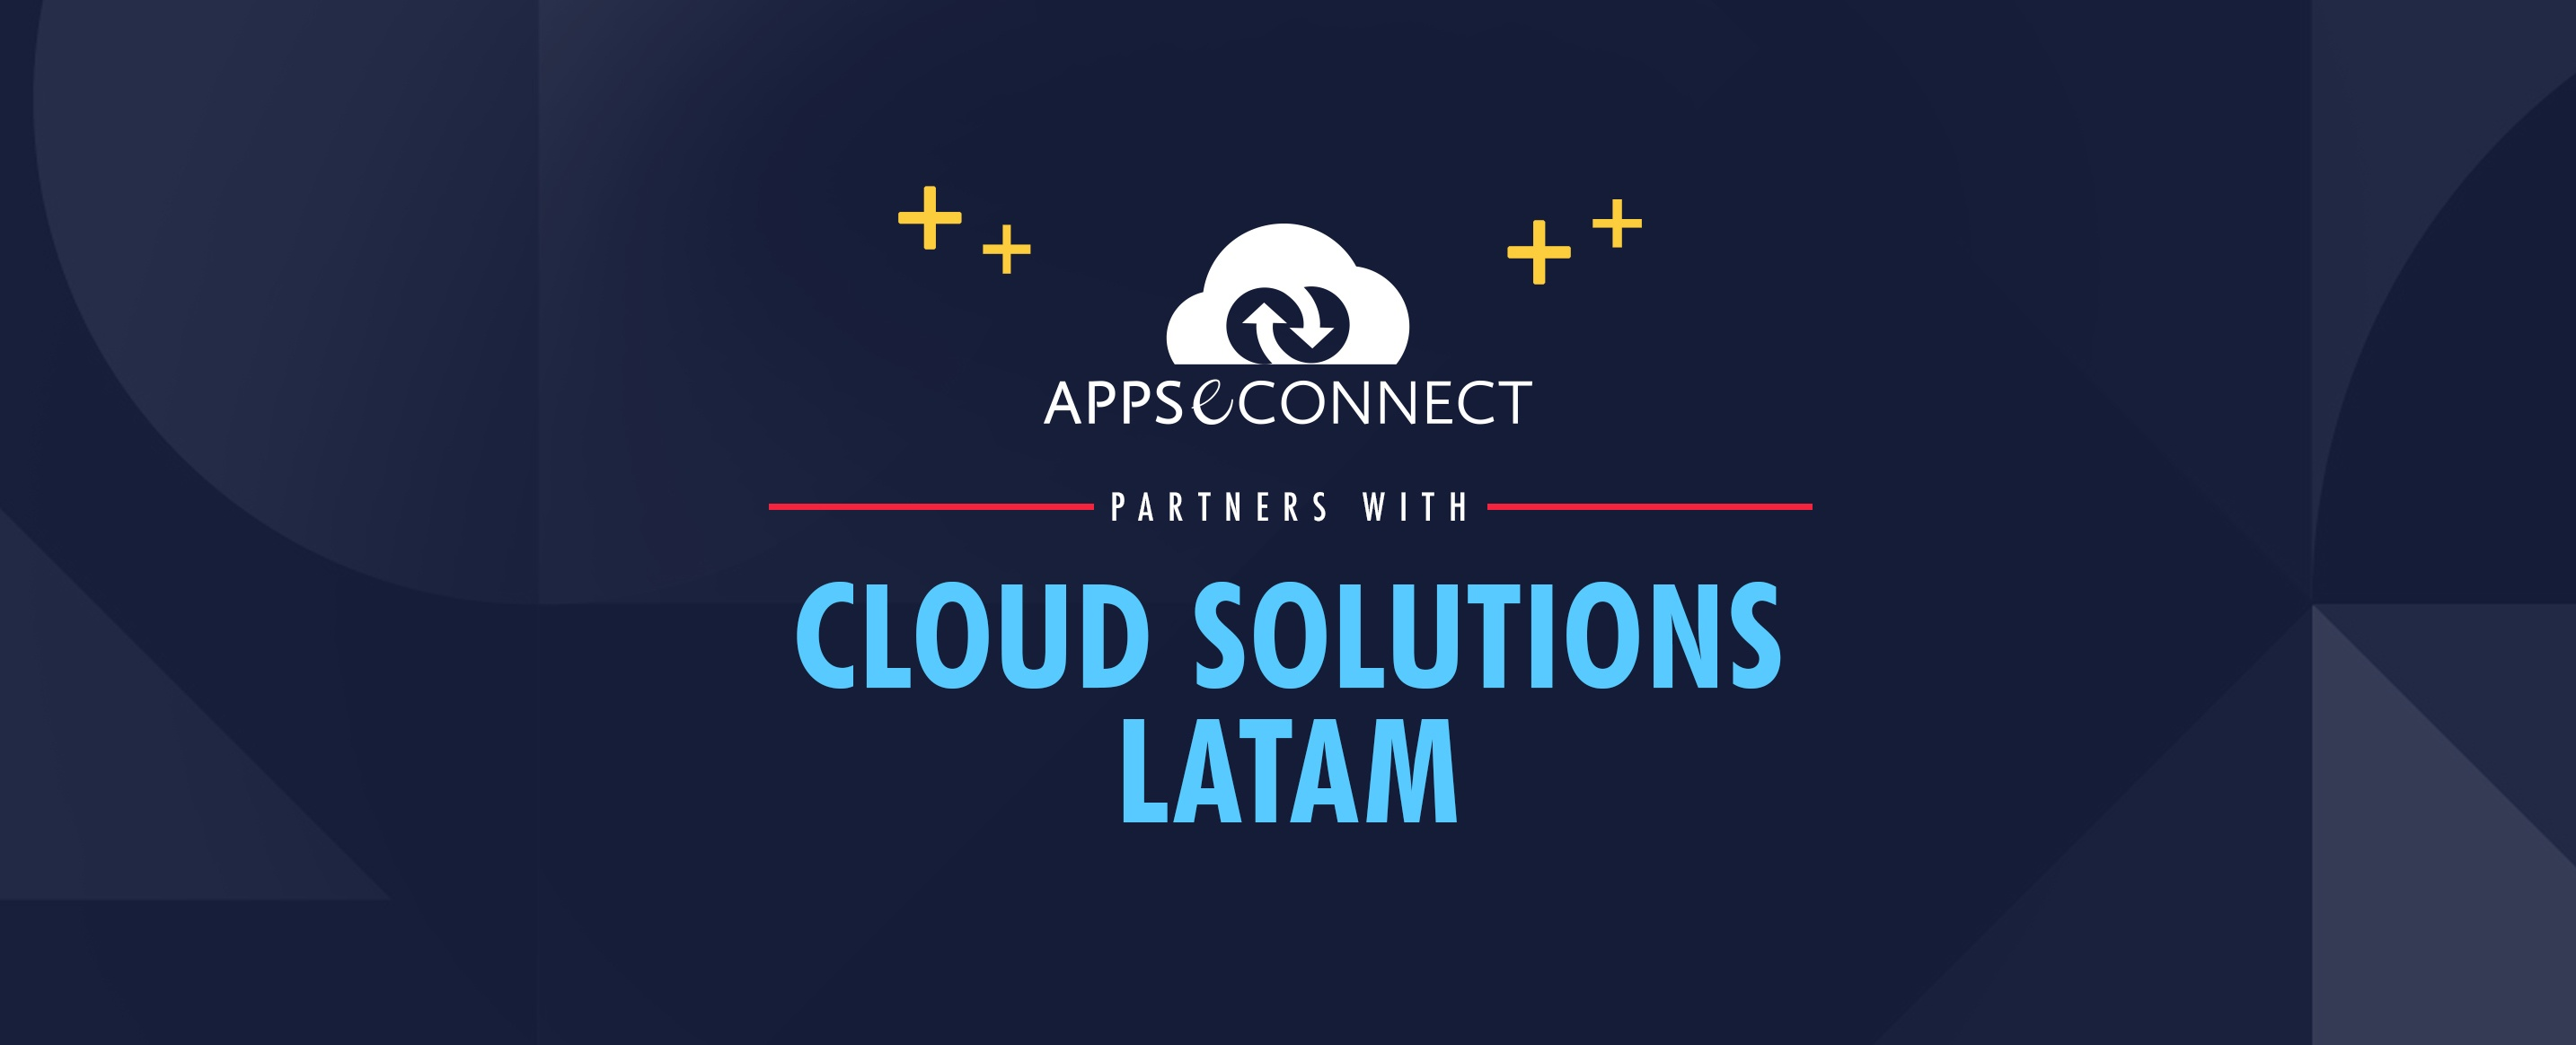 Cloud-Solutions-LATAM-APPSeCONNECT-Partner